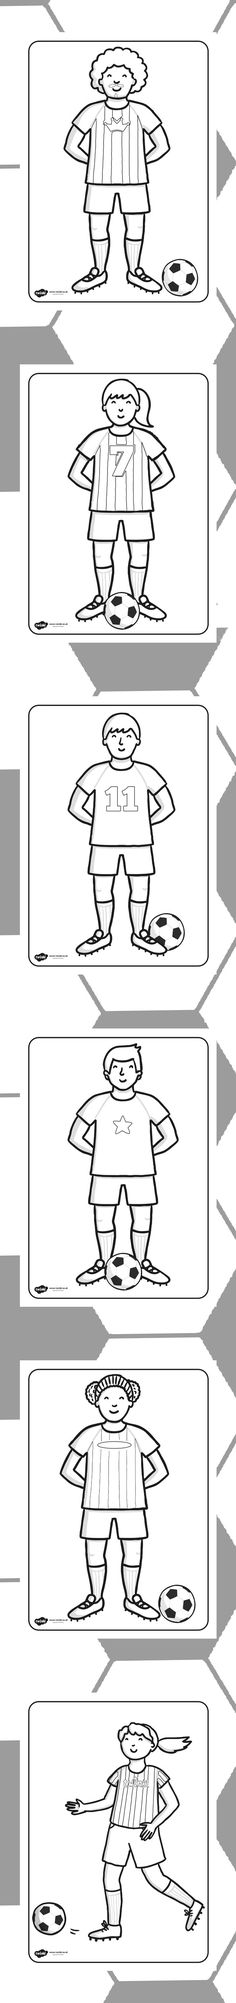 Football/World Cup- Football Players Colouring Sheets